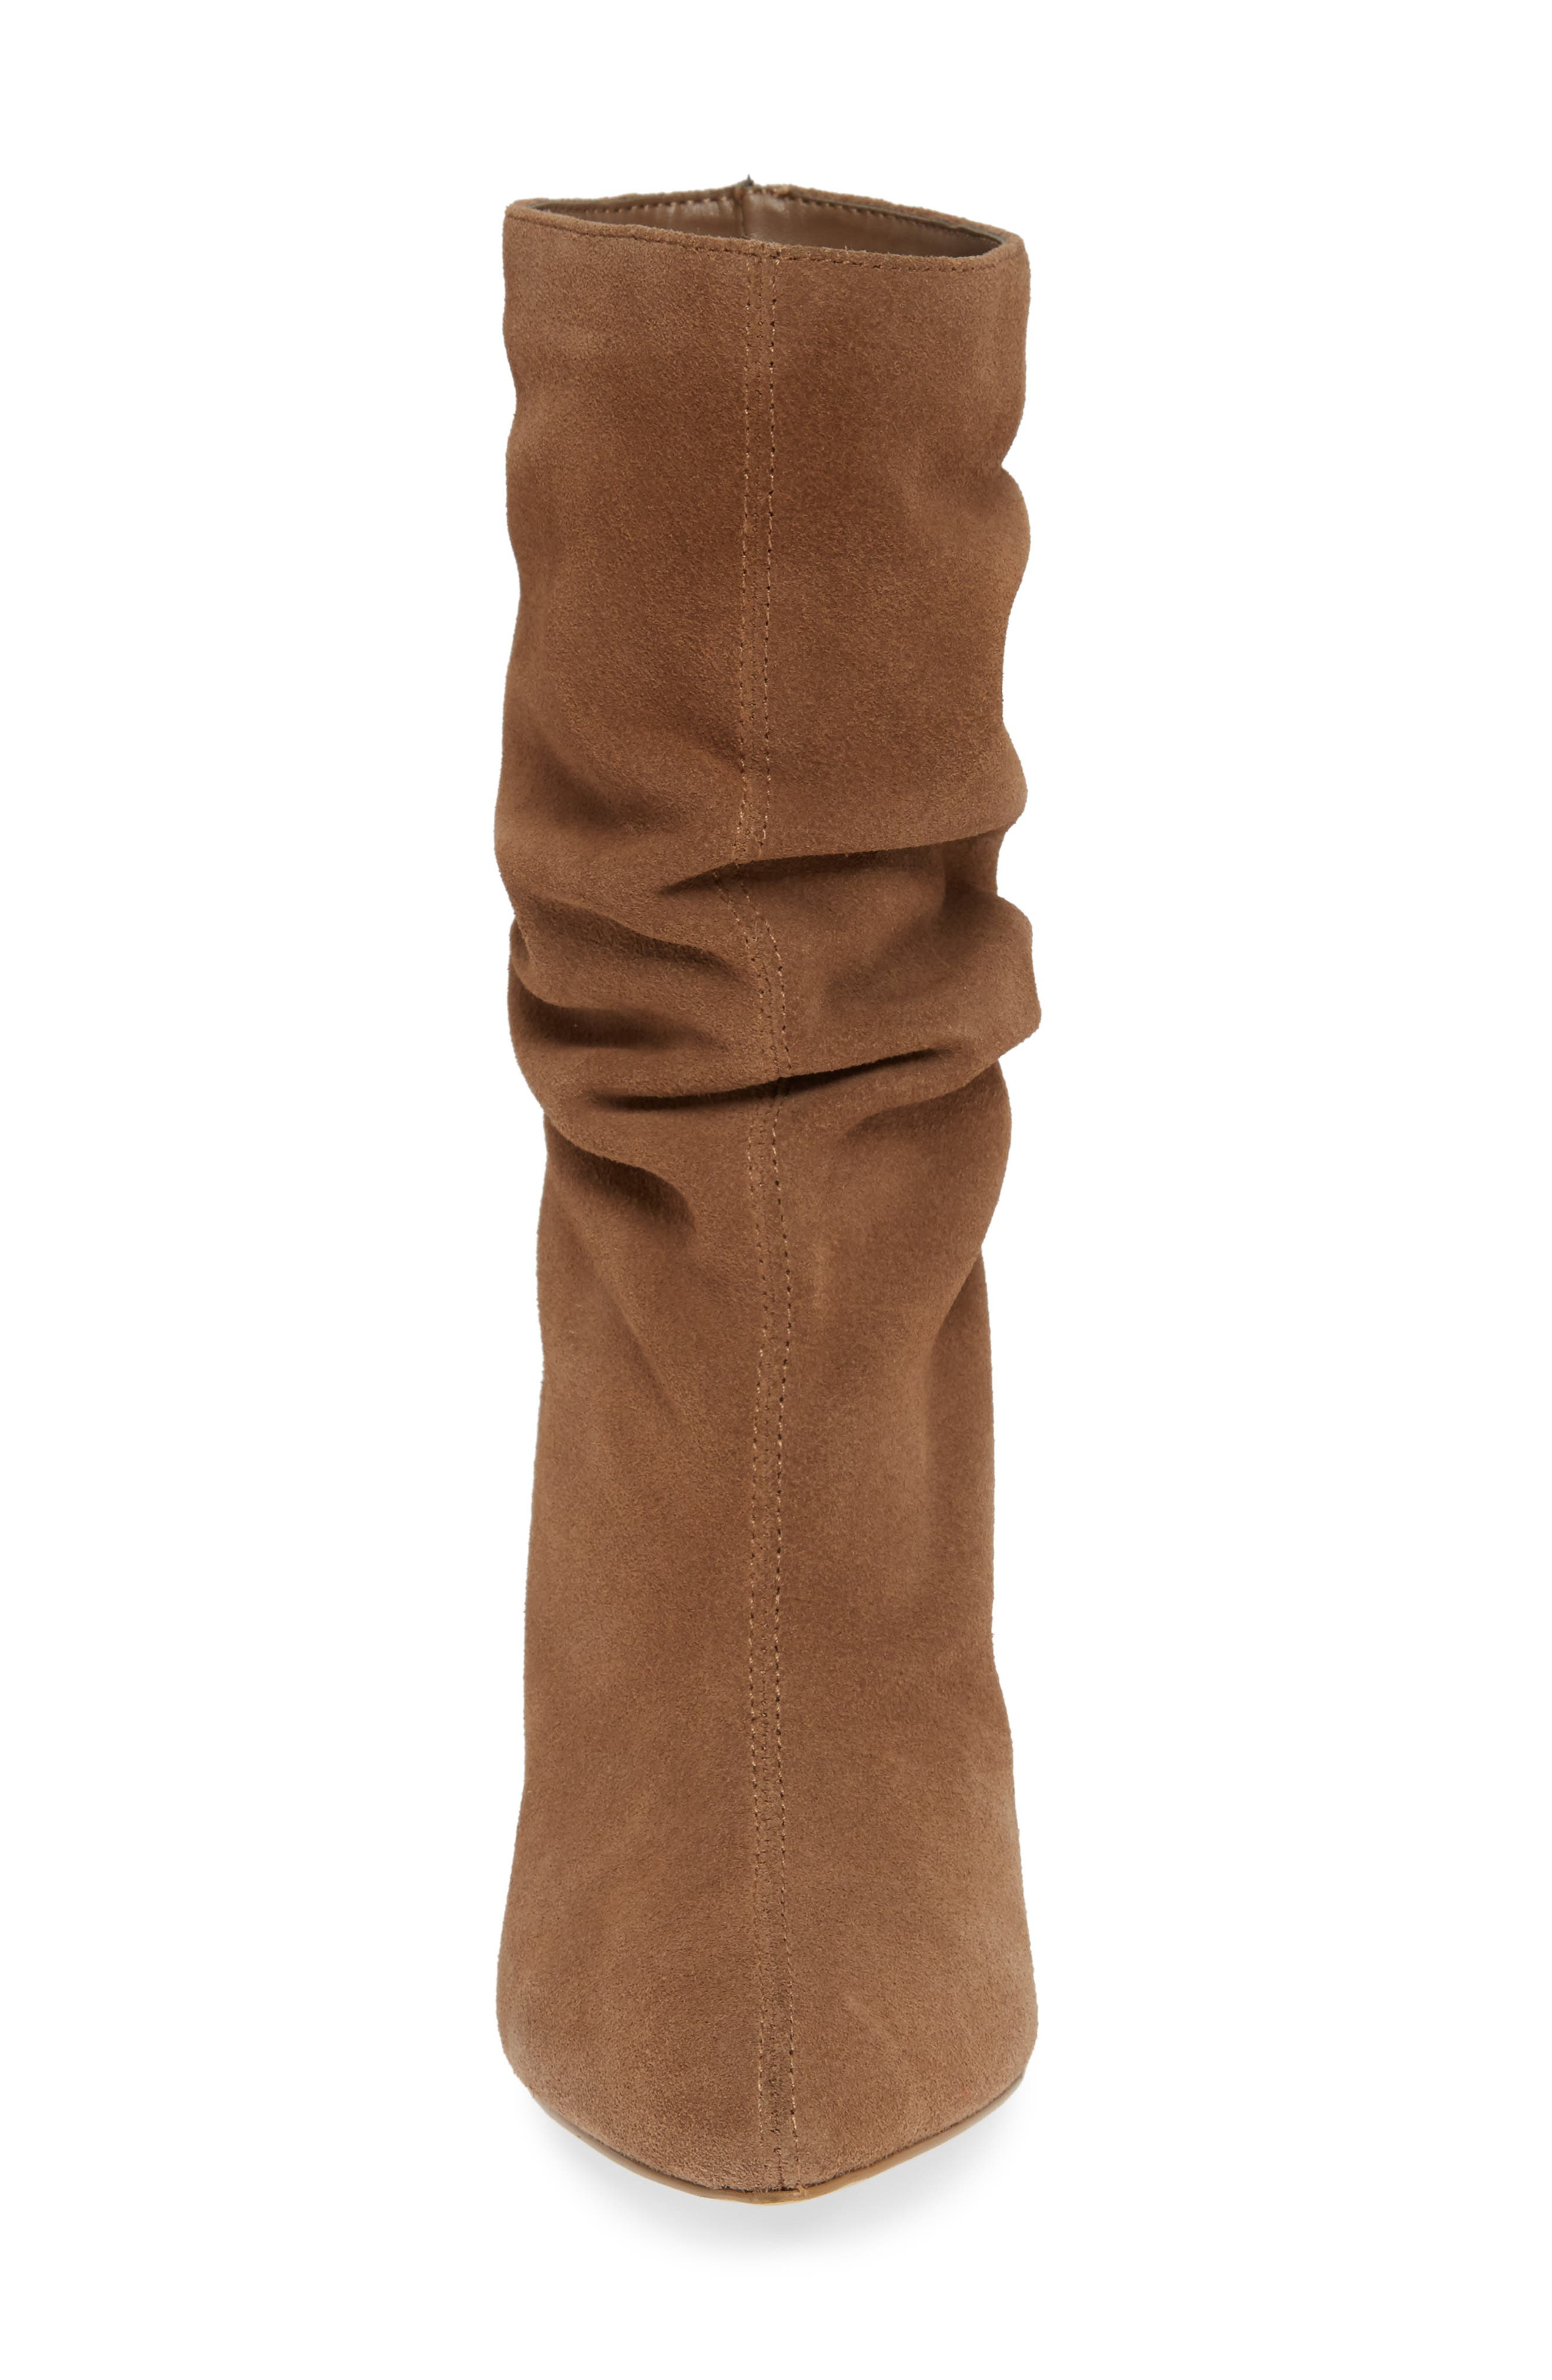 CHARLES BY CHARLES DAVID, Edell Slouchy Wedge Boot, Alternate thumbnail 4, color, TAUPE SUEDE